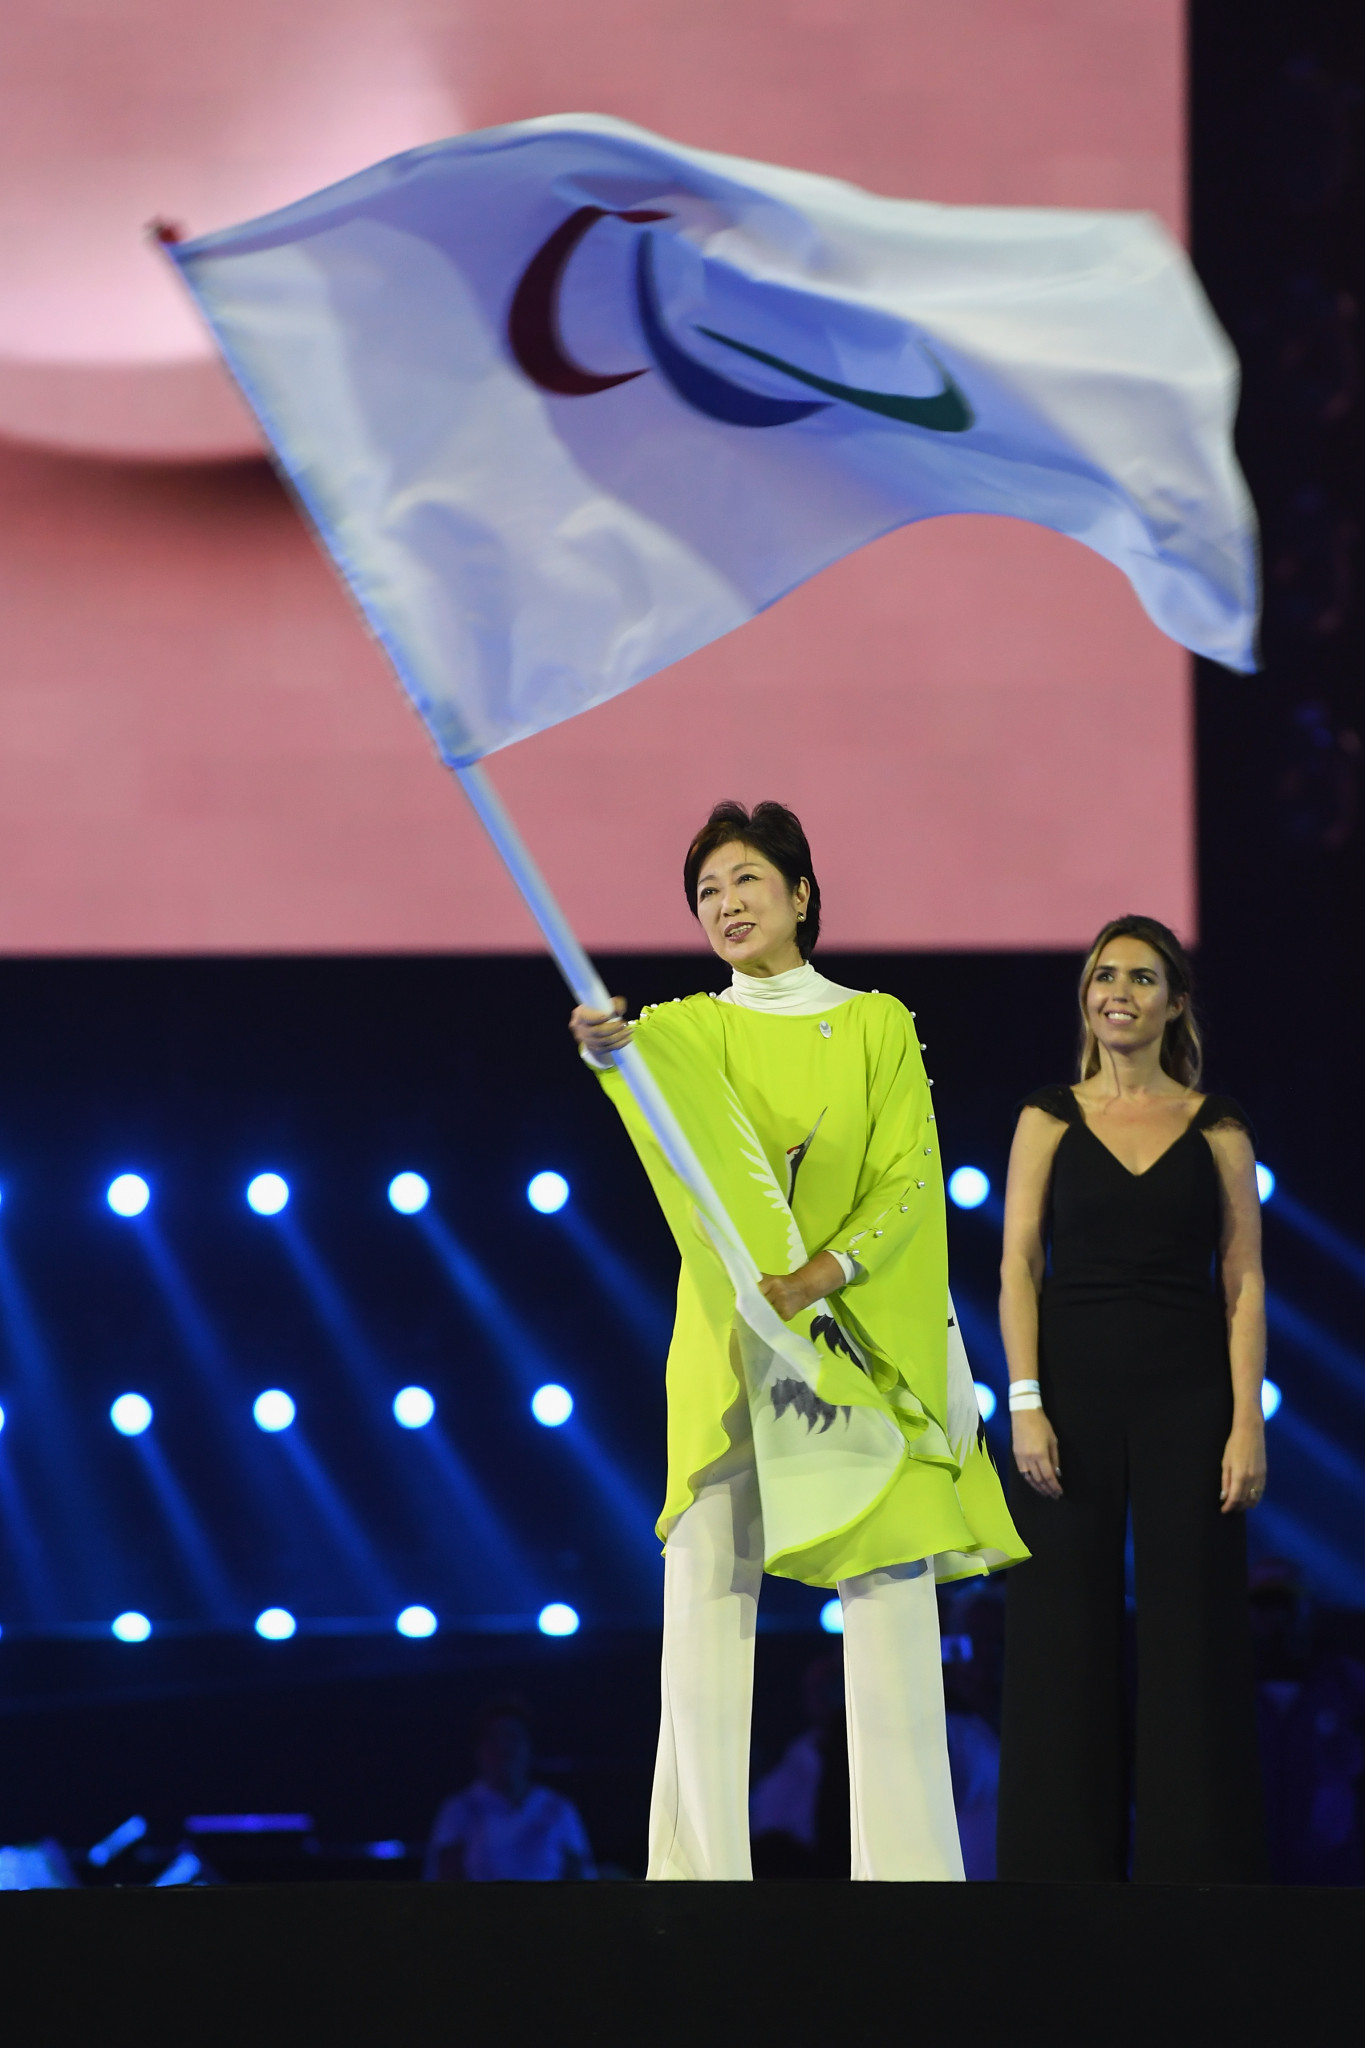 Tokyo's Governor Yuriko Koike waves the IPC flag during the Closing Ceremony of the Rio 2016 Paralympic Games ©Getty Images